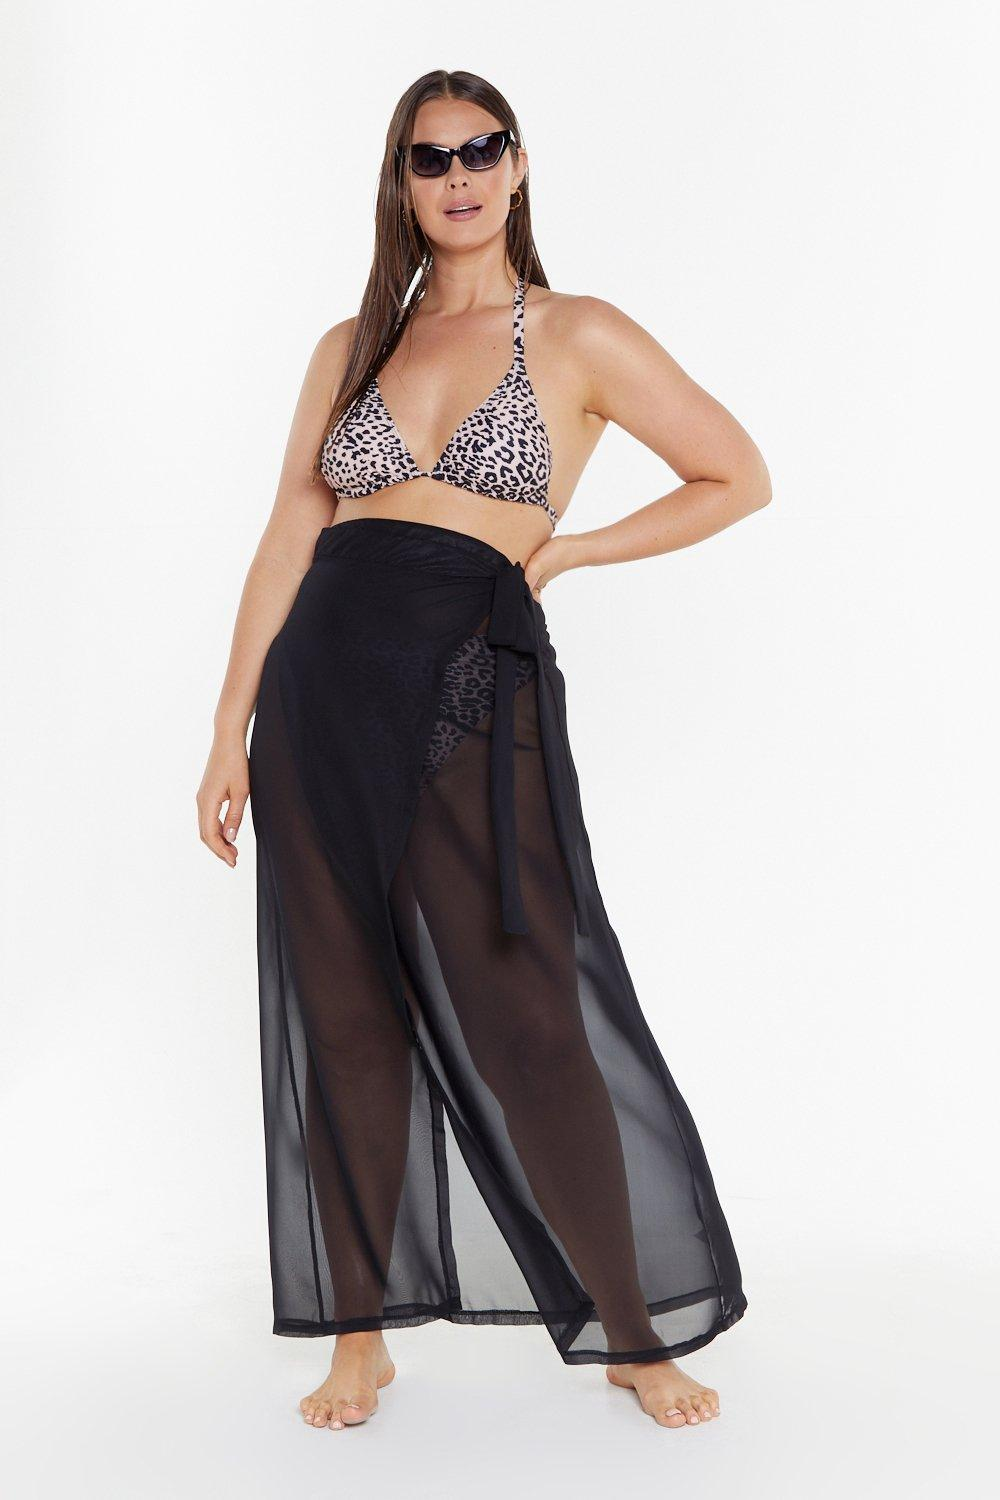 ffed61aaa53bb We'll Sea About That Chiffon Cover-Up Plus Skirt | Shop Clothes at ...